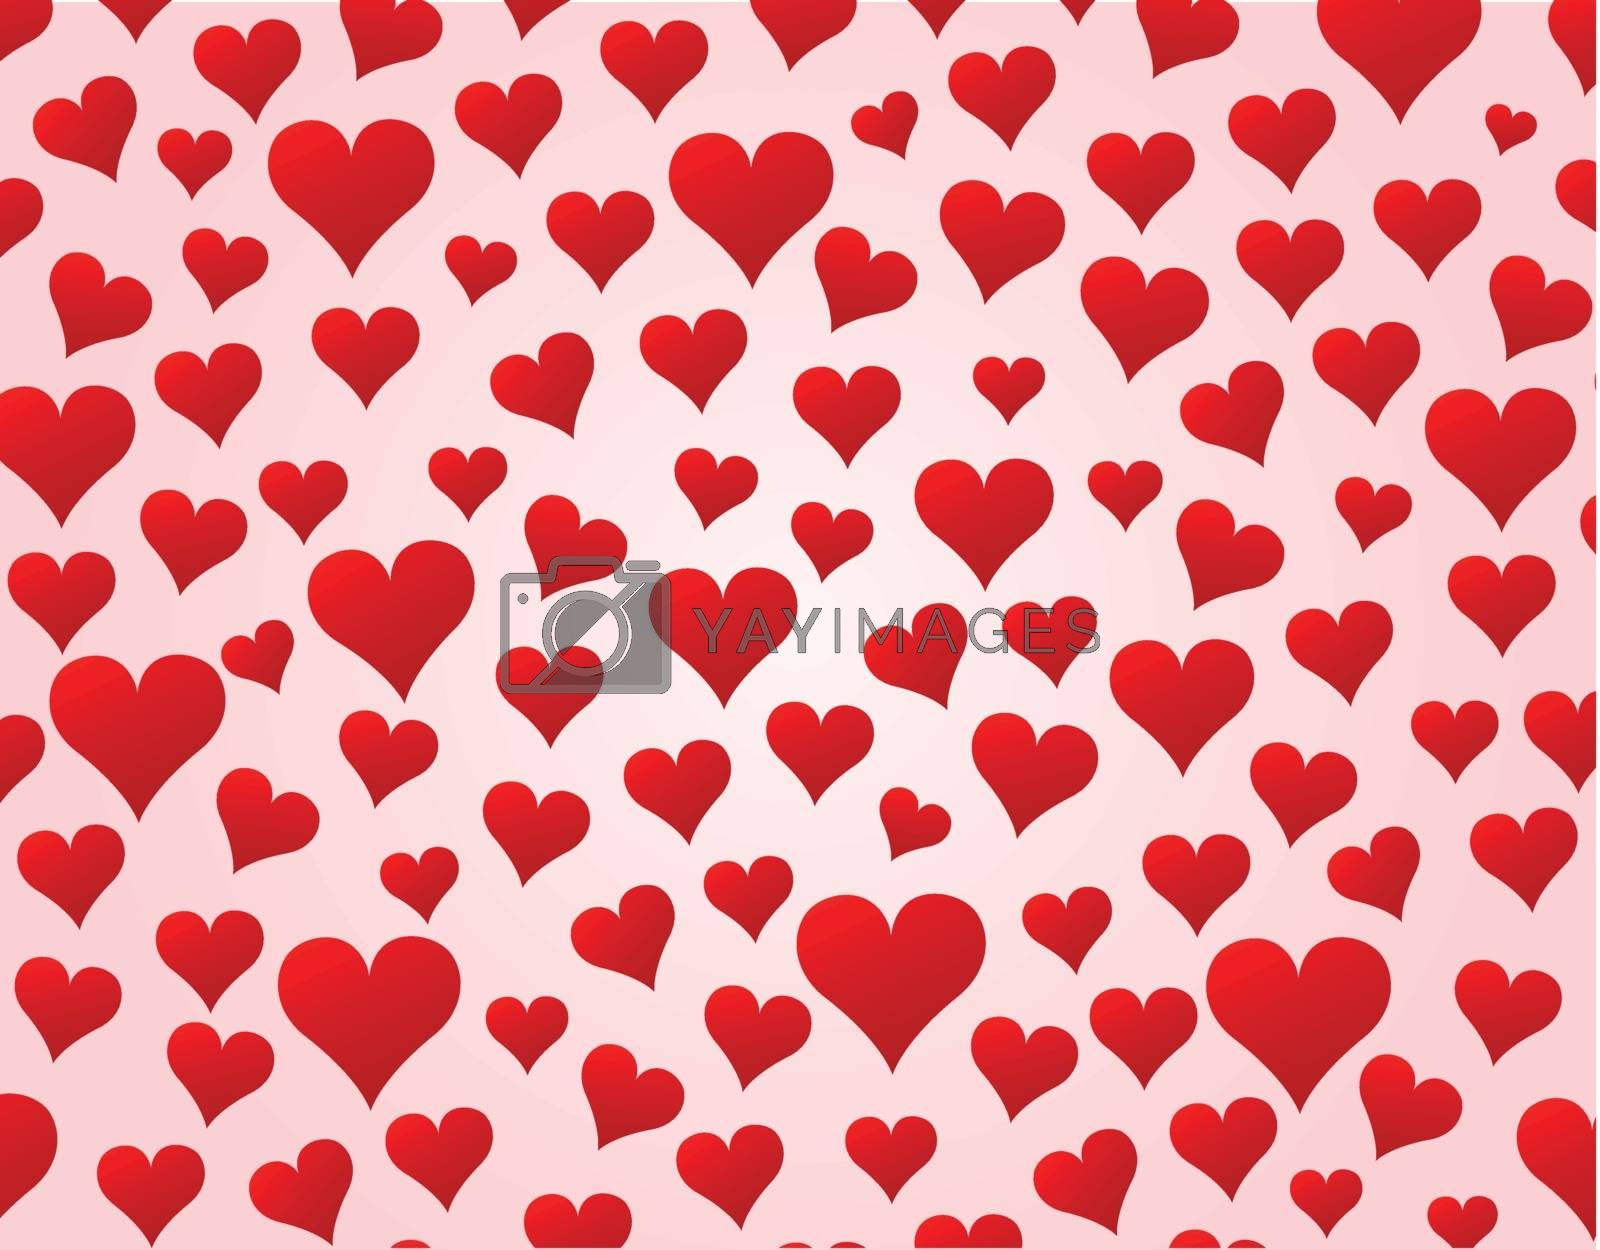 Vector illustration of small hearts background for love concept